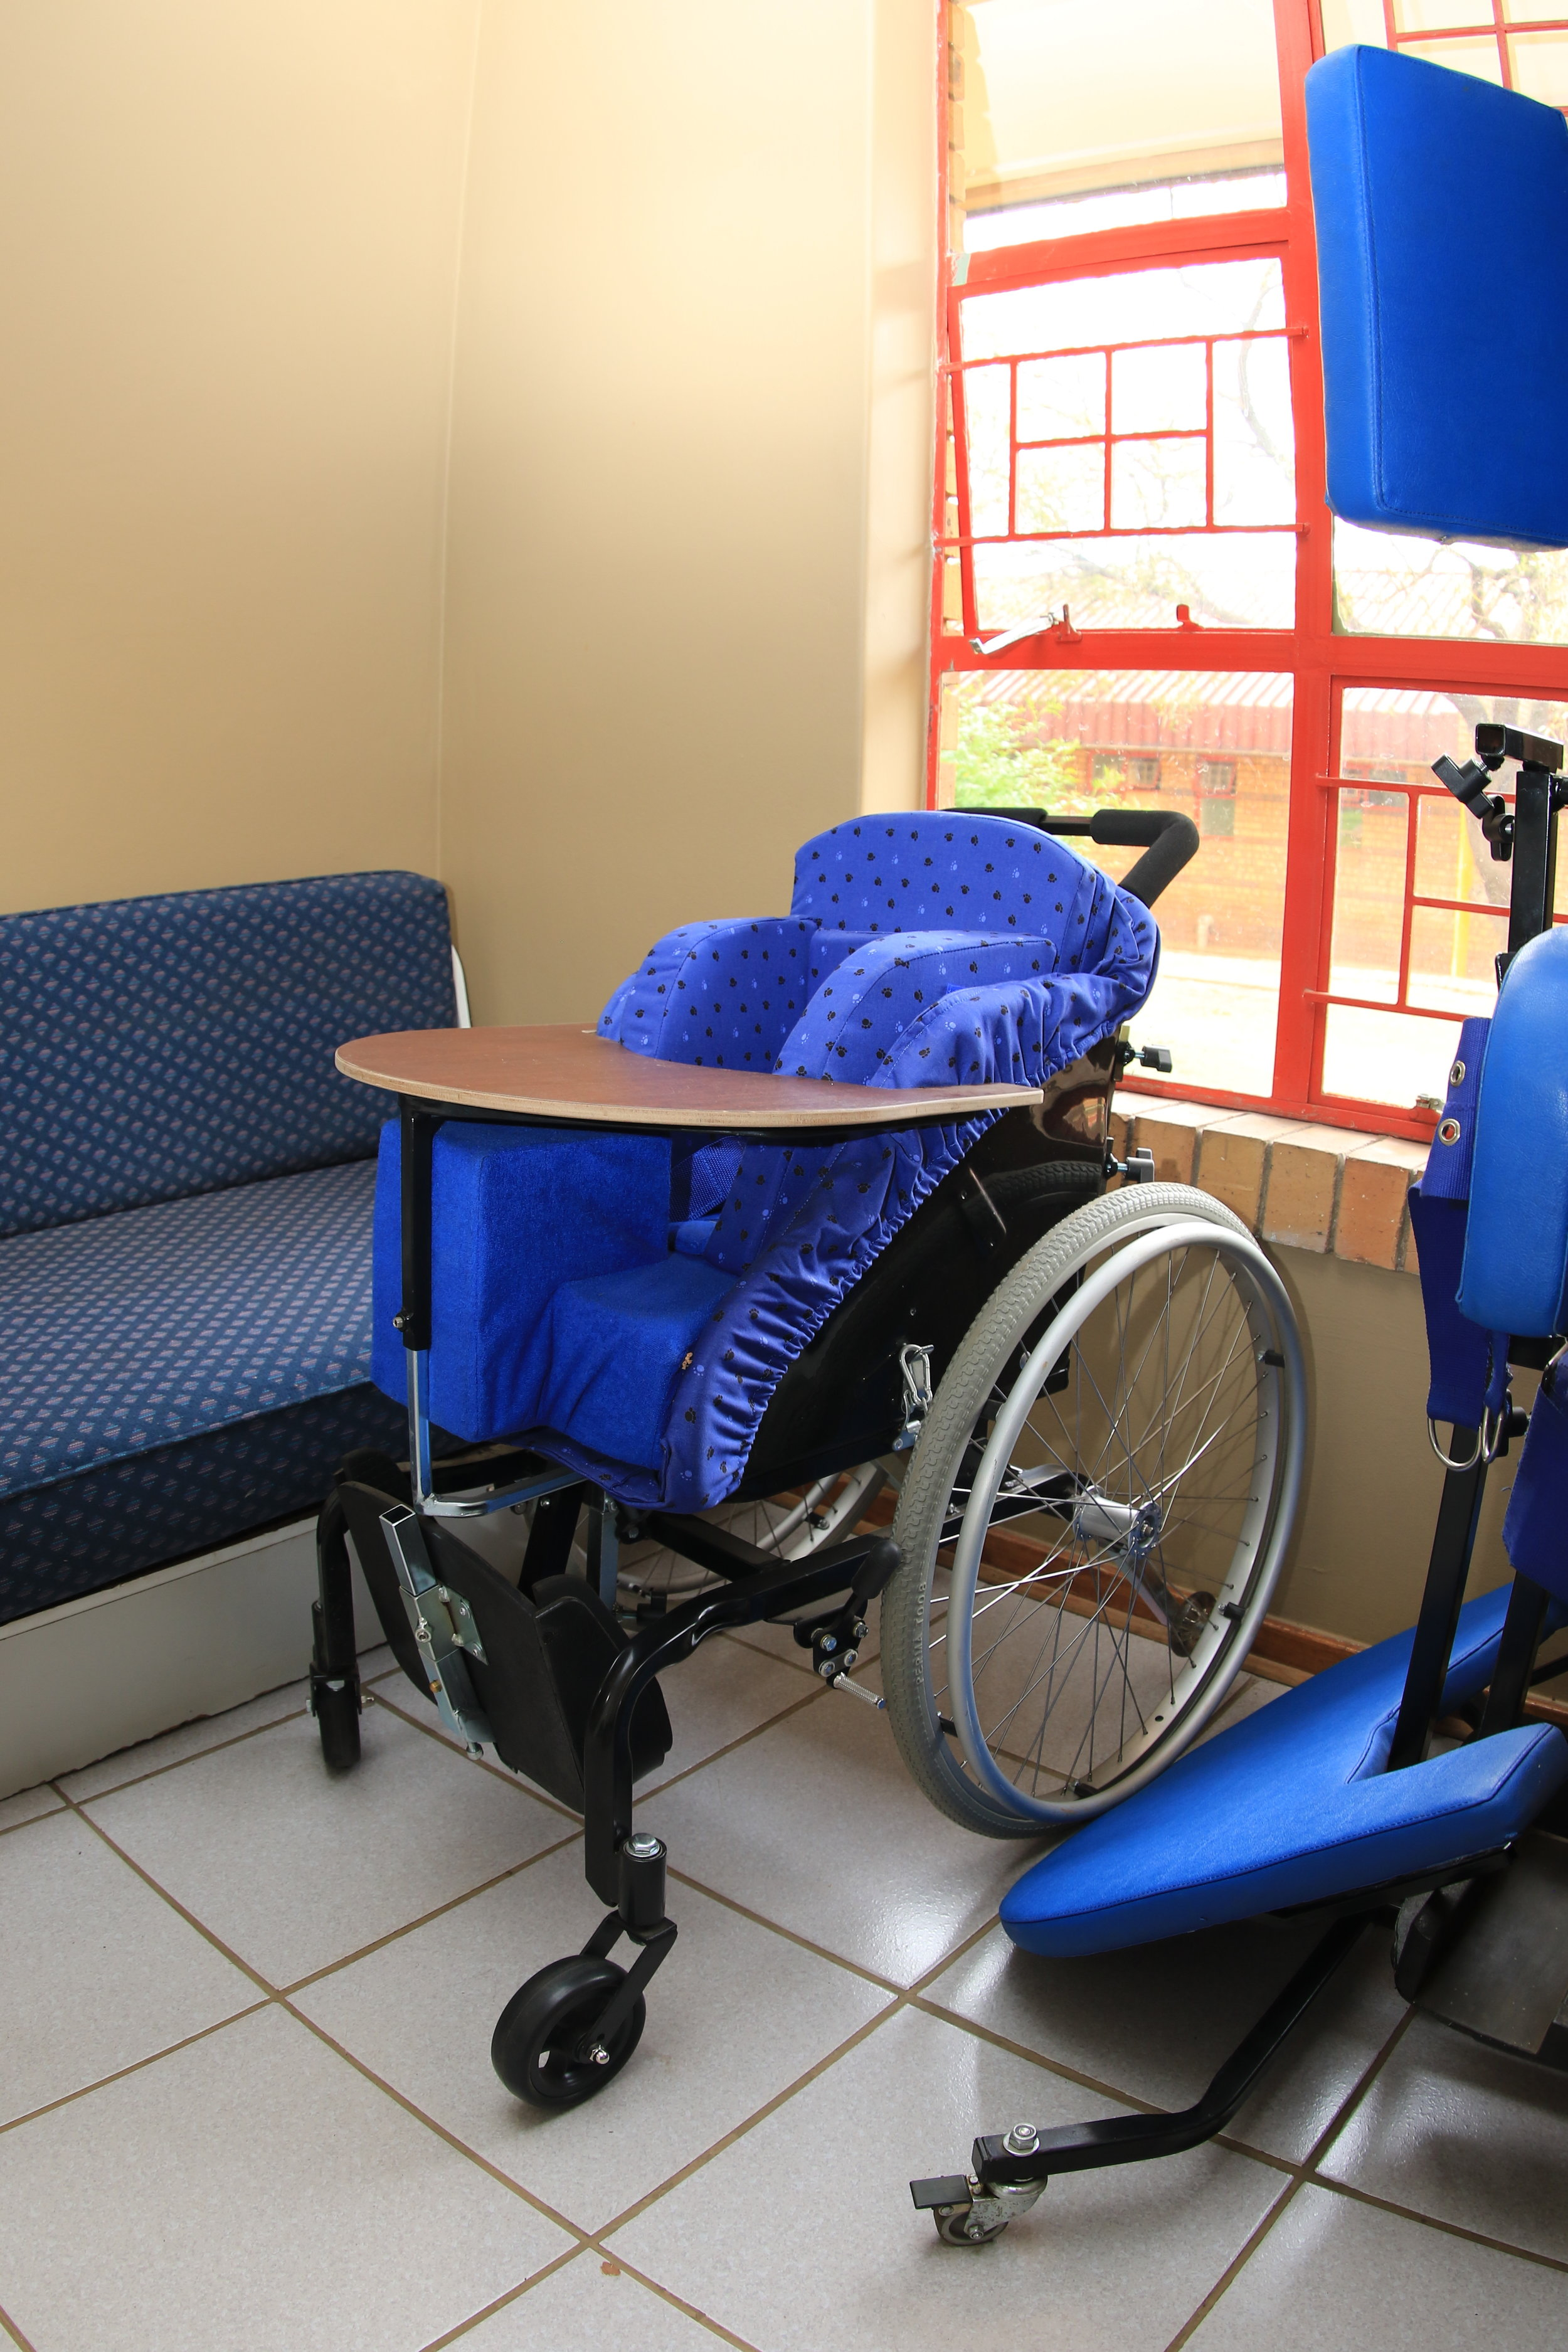 CNY_Images_BonginhlanhlaStimulationCentre_WheelChair.JPG